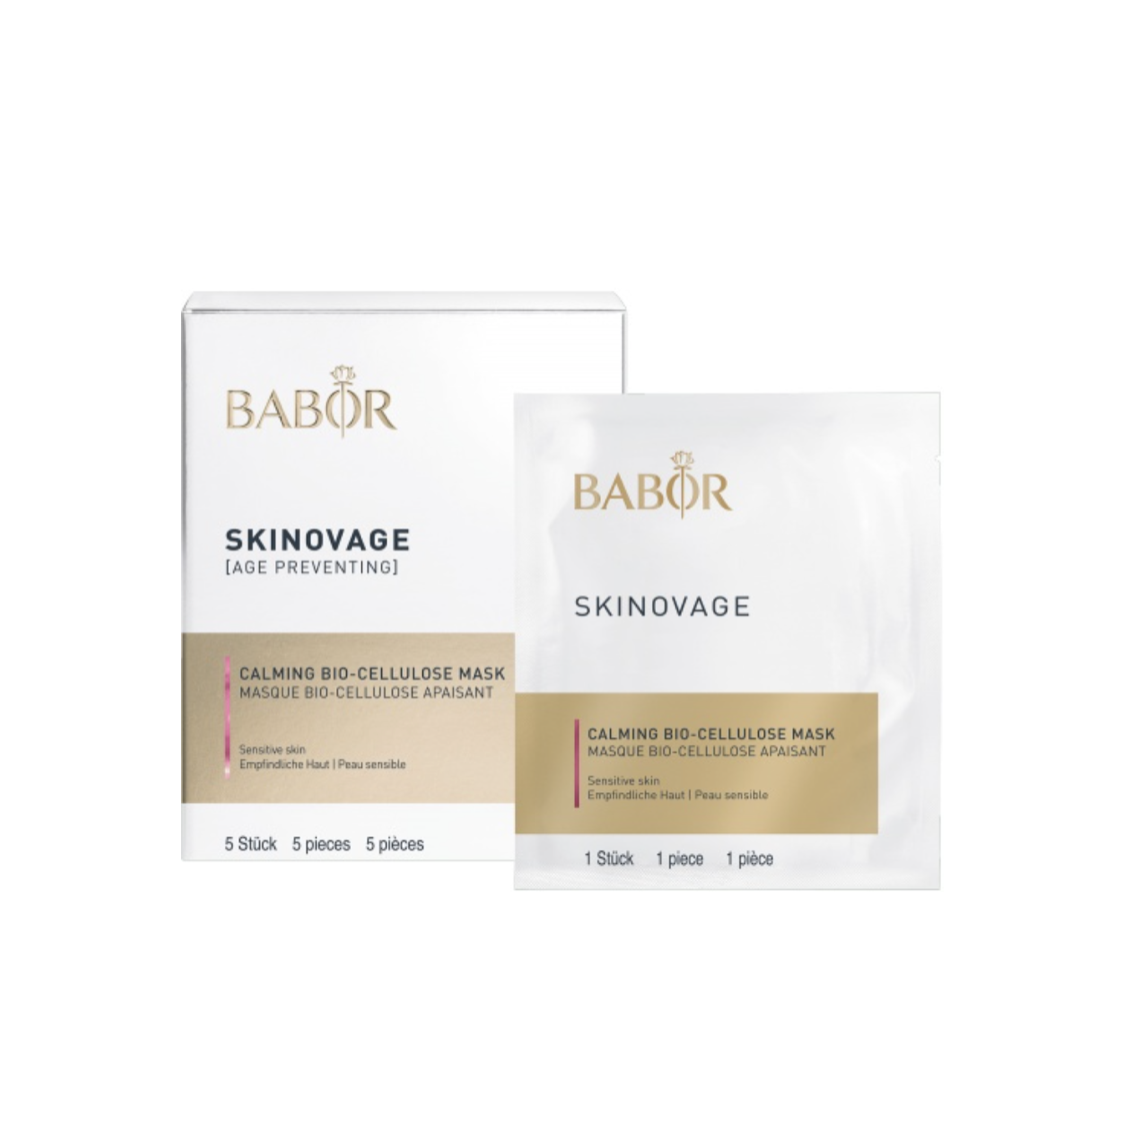 Babor Skinovage Calming Bio-Cellulose Mask